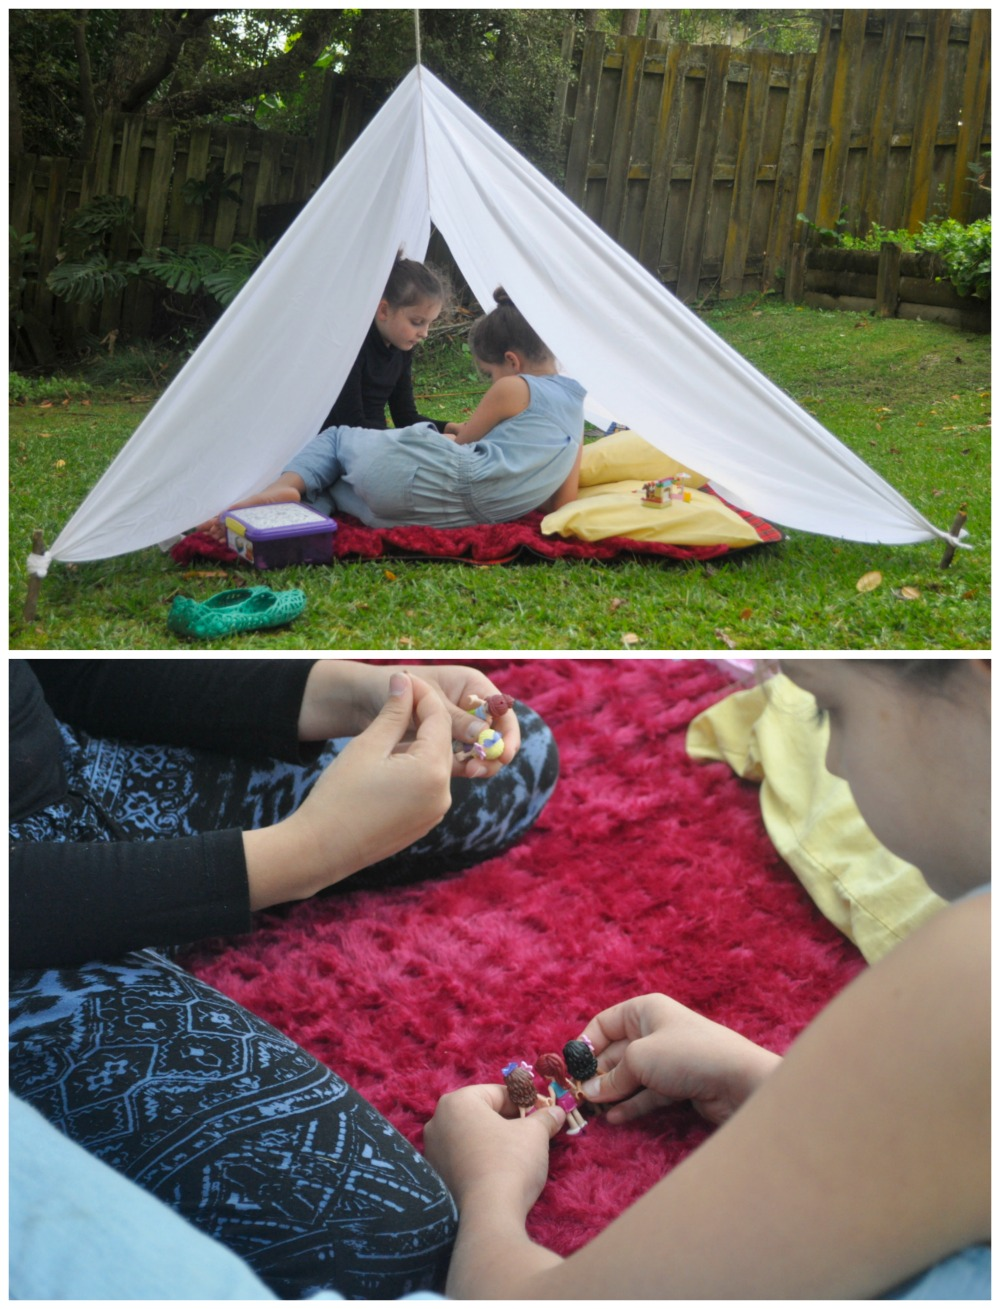 Lego in a backyard tent